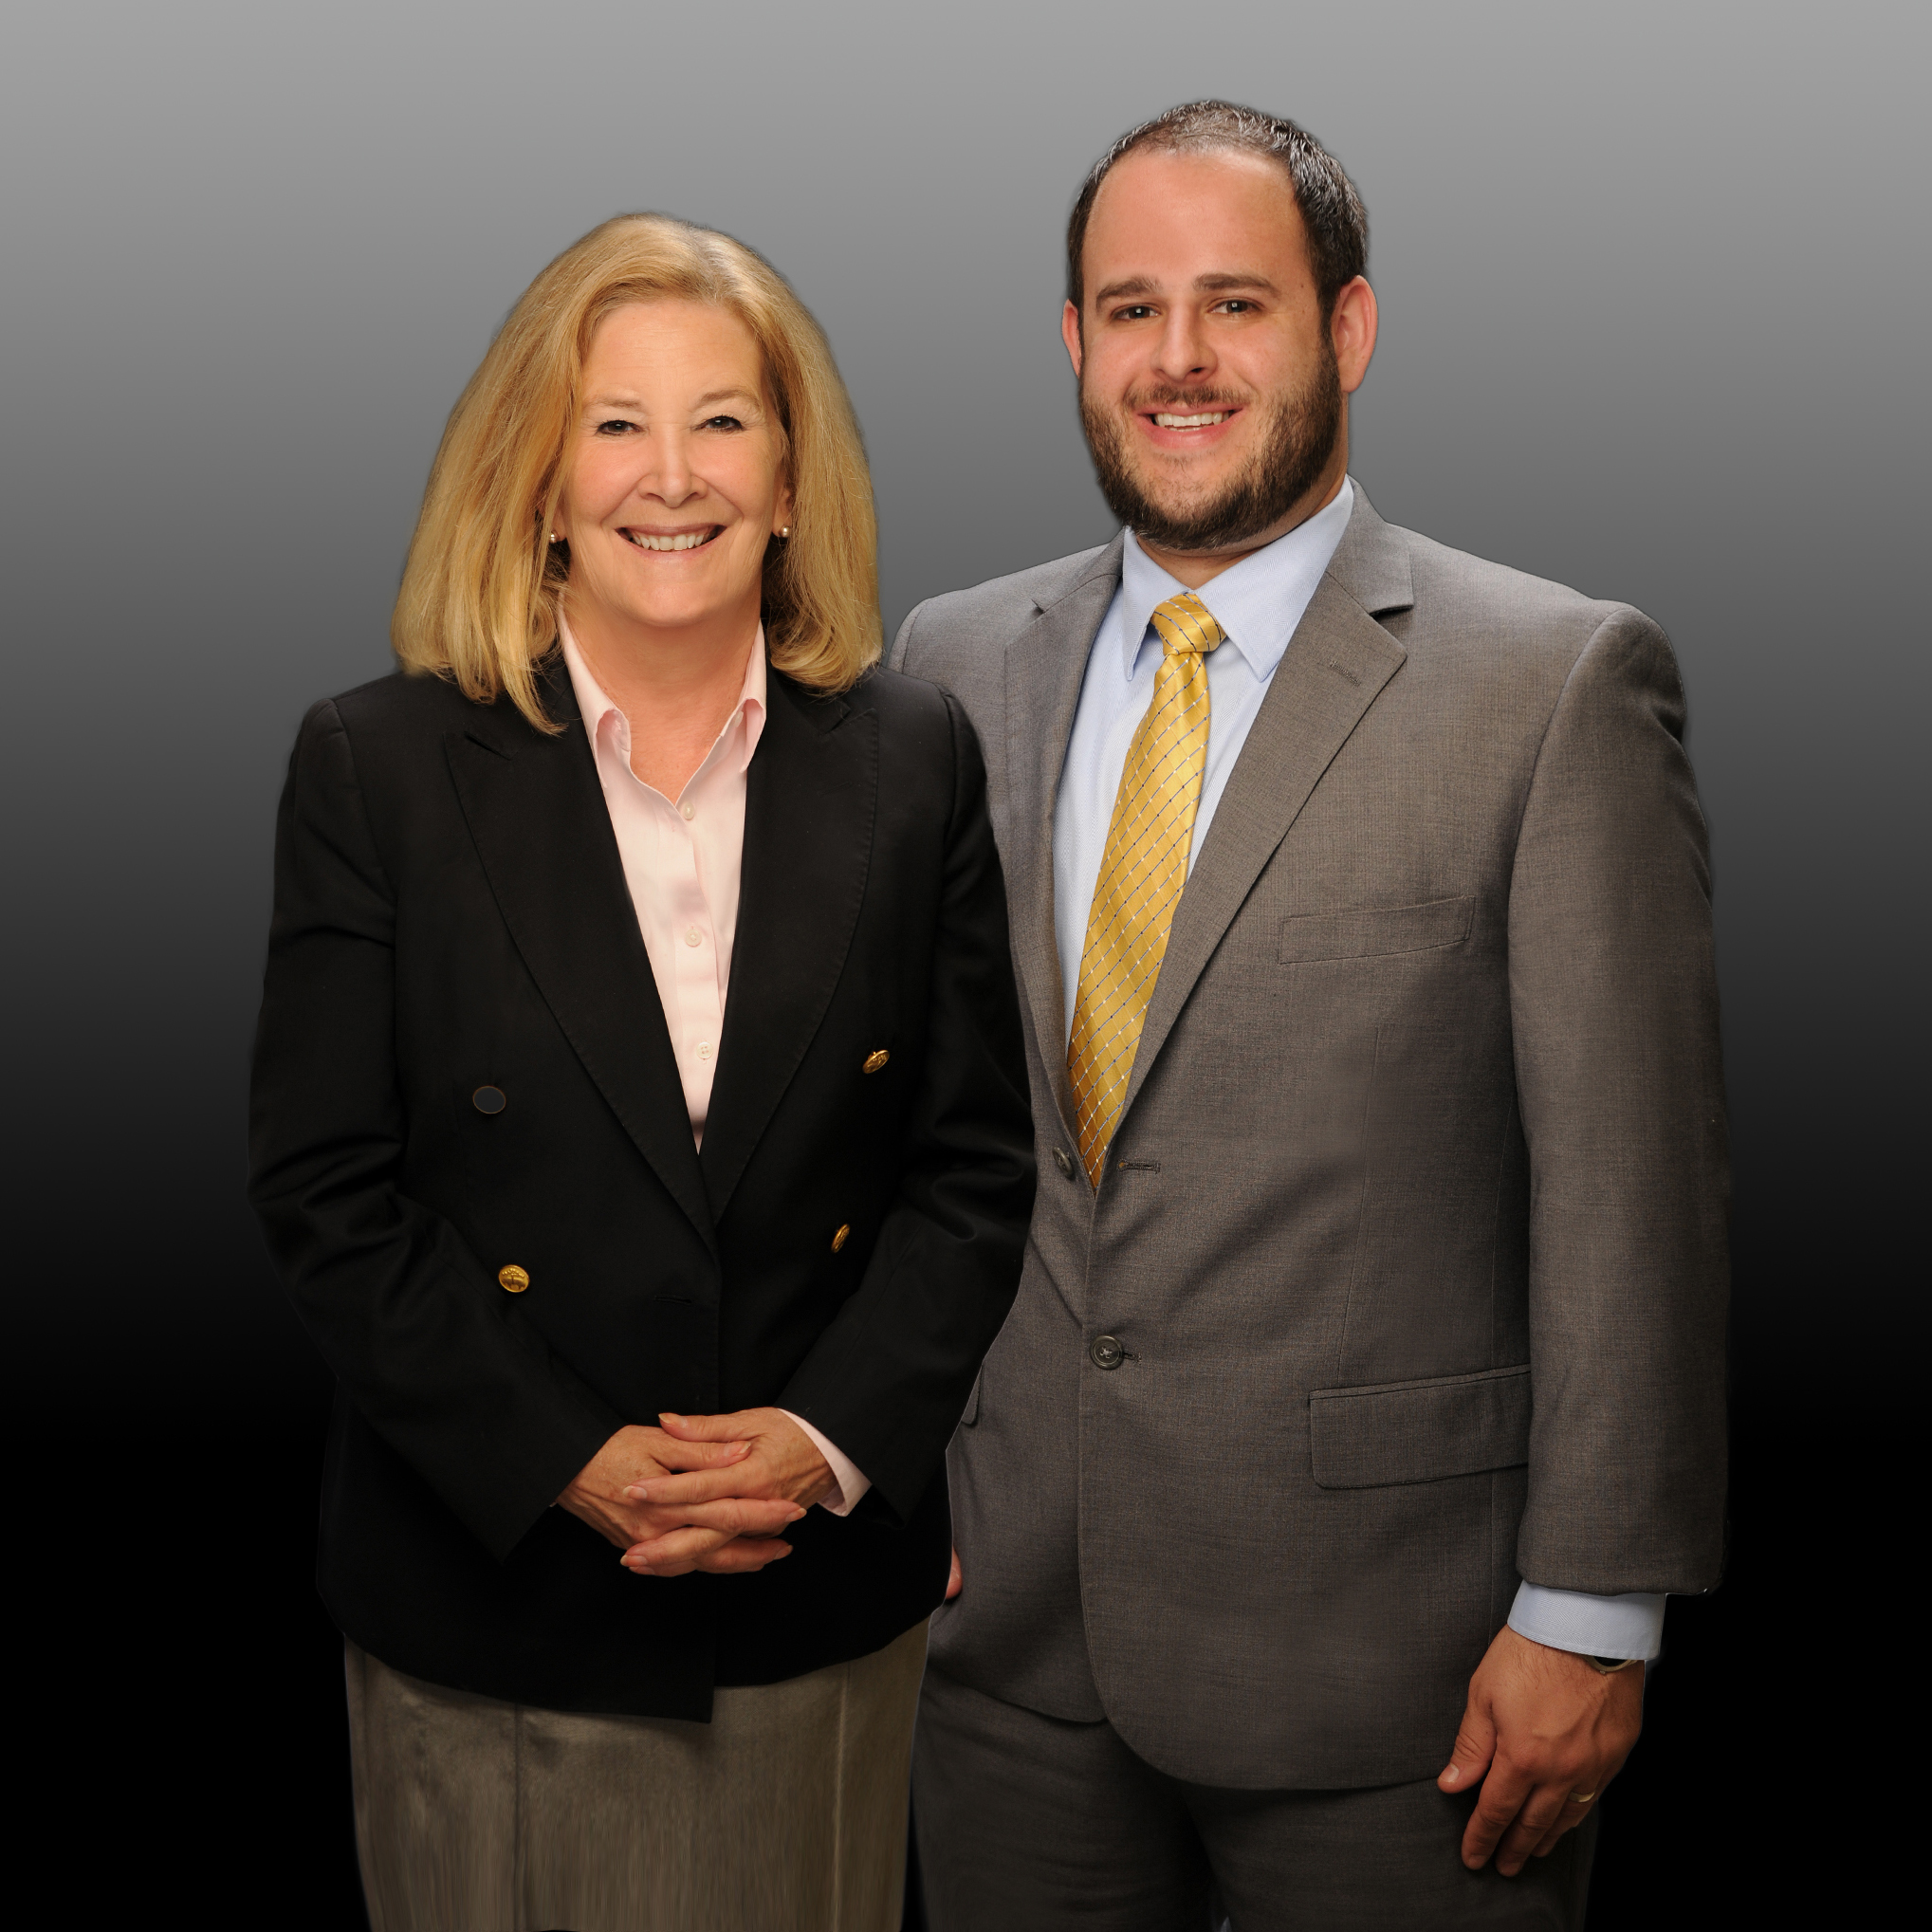 The Lise Howe Group, including Lise Howe and David Wagner, have joined Long & Foster in Bethesda, Maryland.